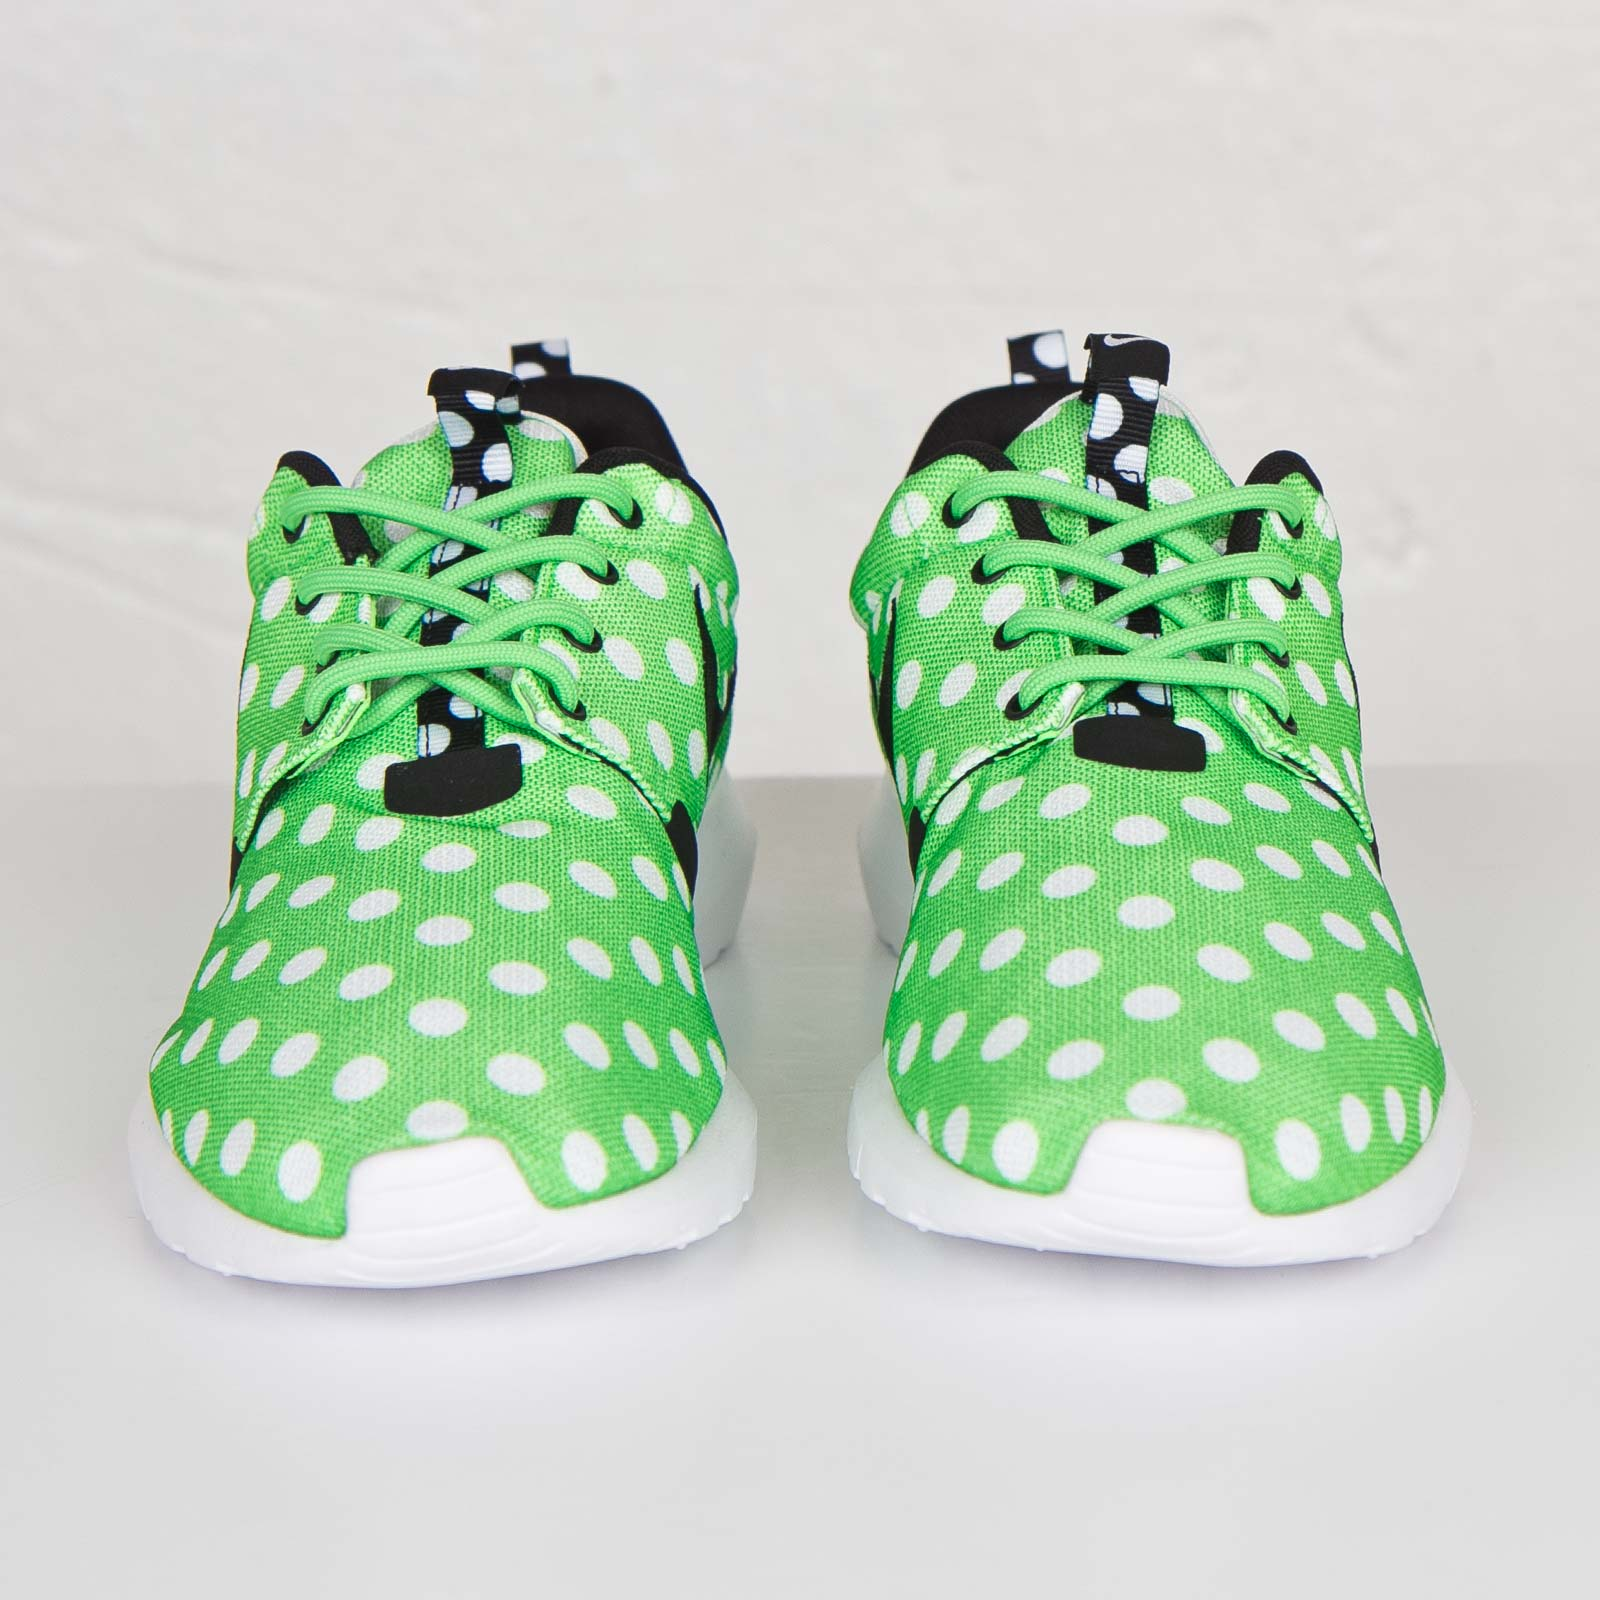 reputable site d9f60 404a1 Nike Roshe Run NM QS Color  Green Strike Black-White Style  810857-300.  Price   110.00